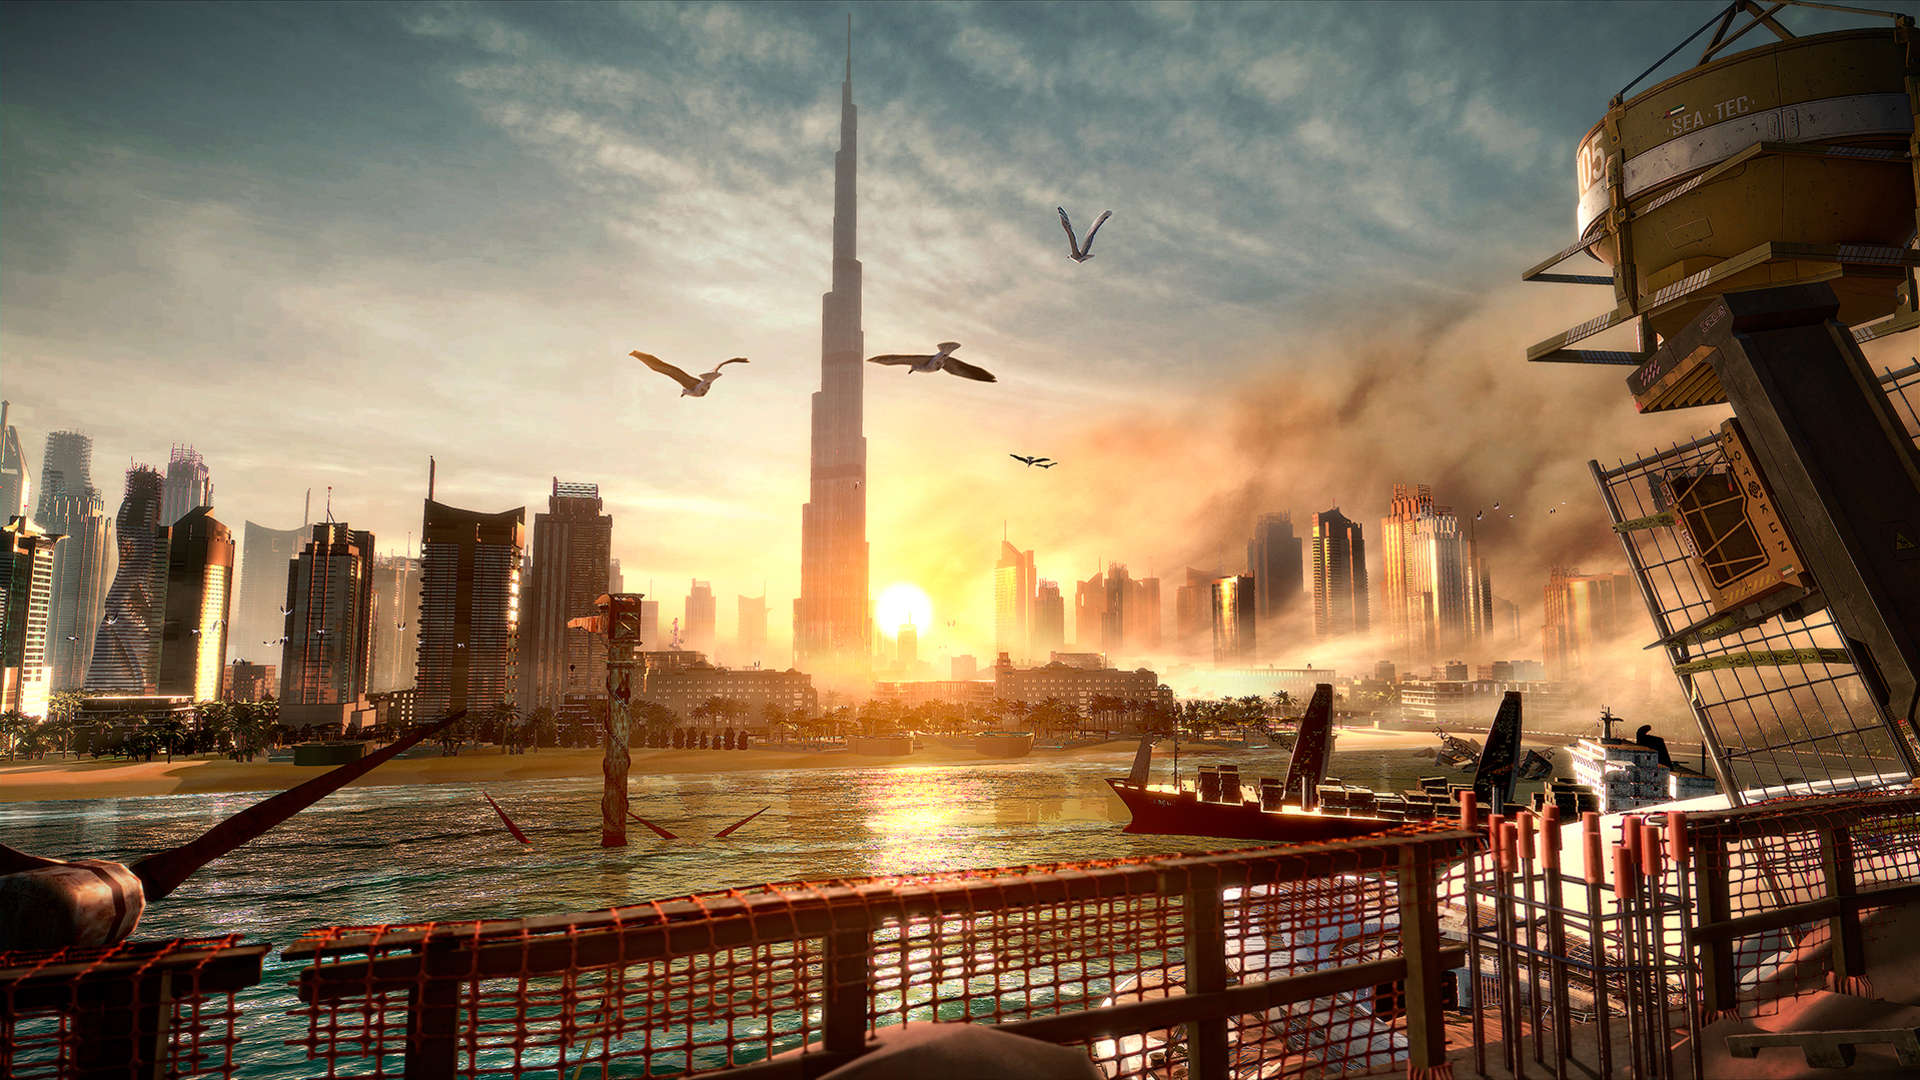 deus ex mankind divided dubai, hd games, 4k wallpapers, images